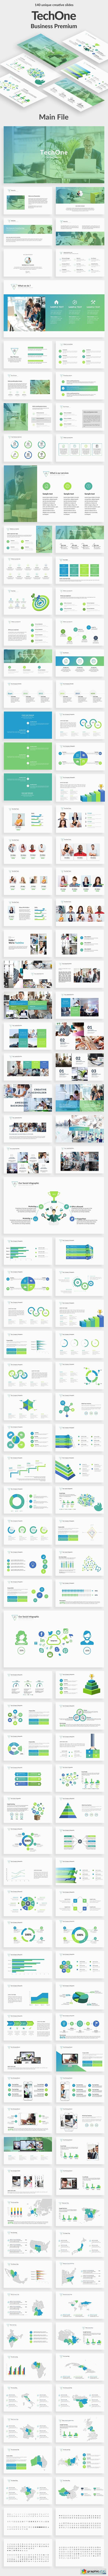 TechOne Business Powerpoint Template